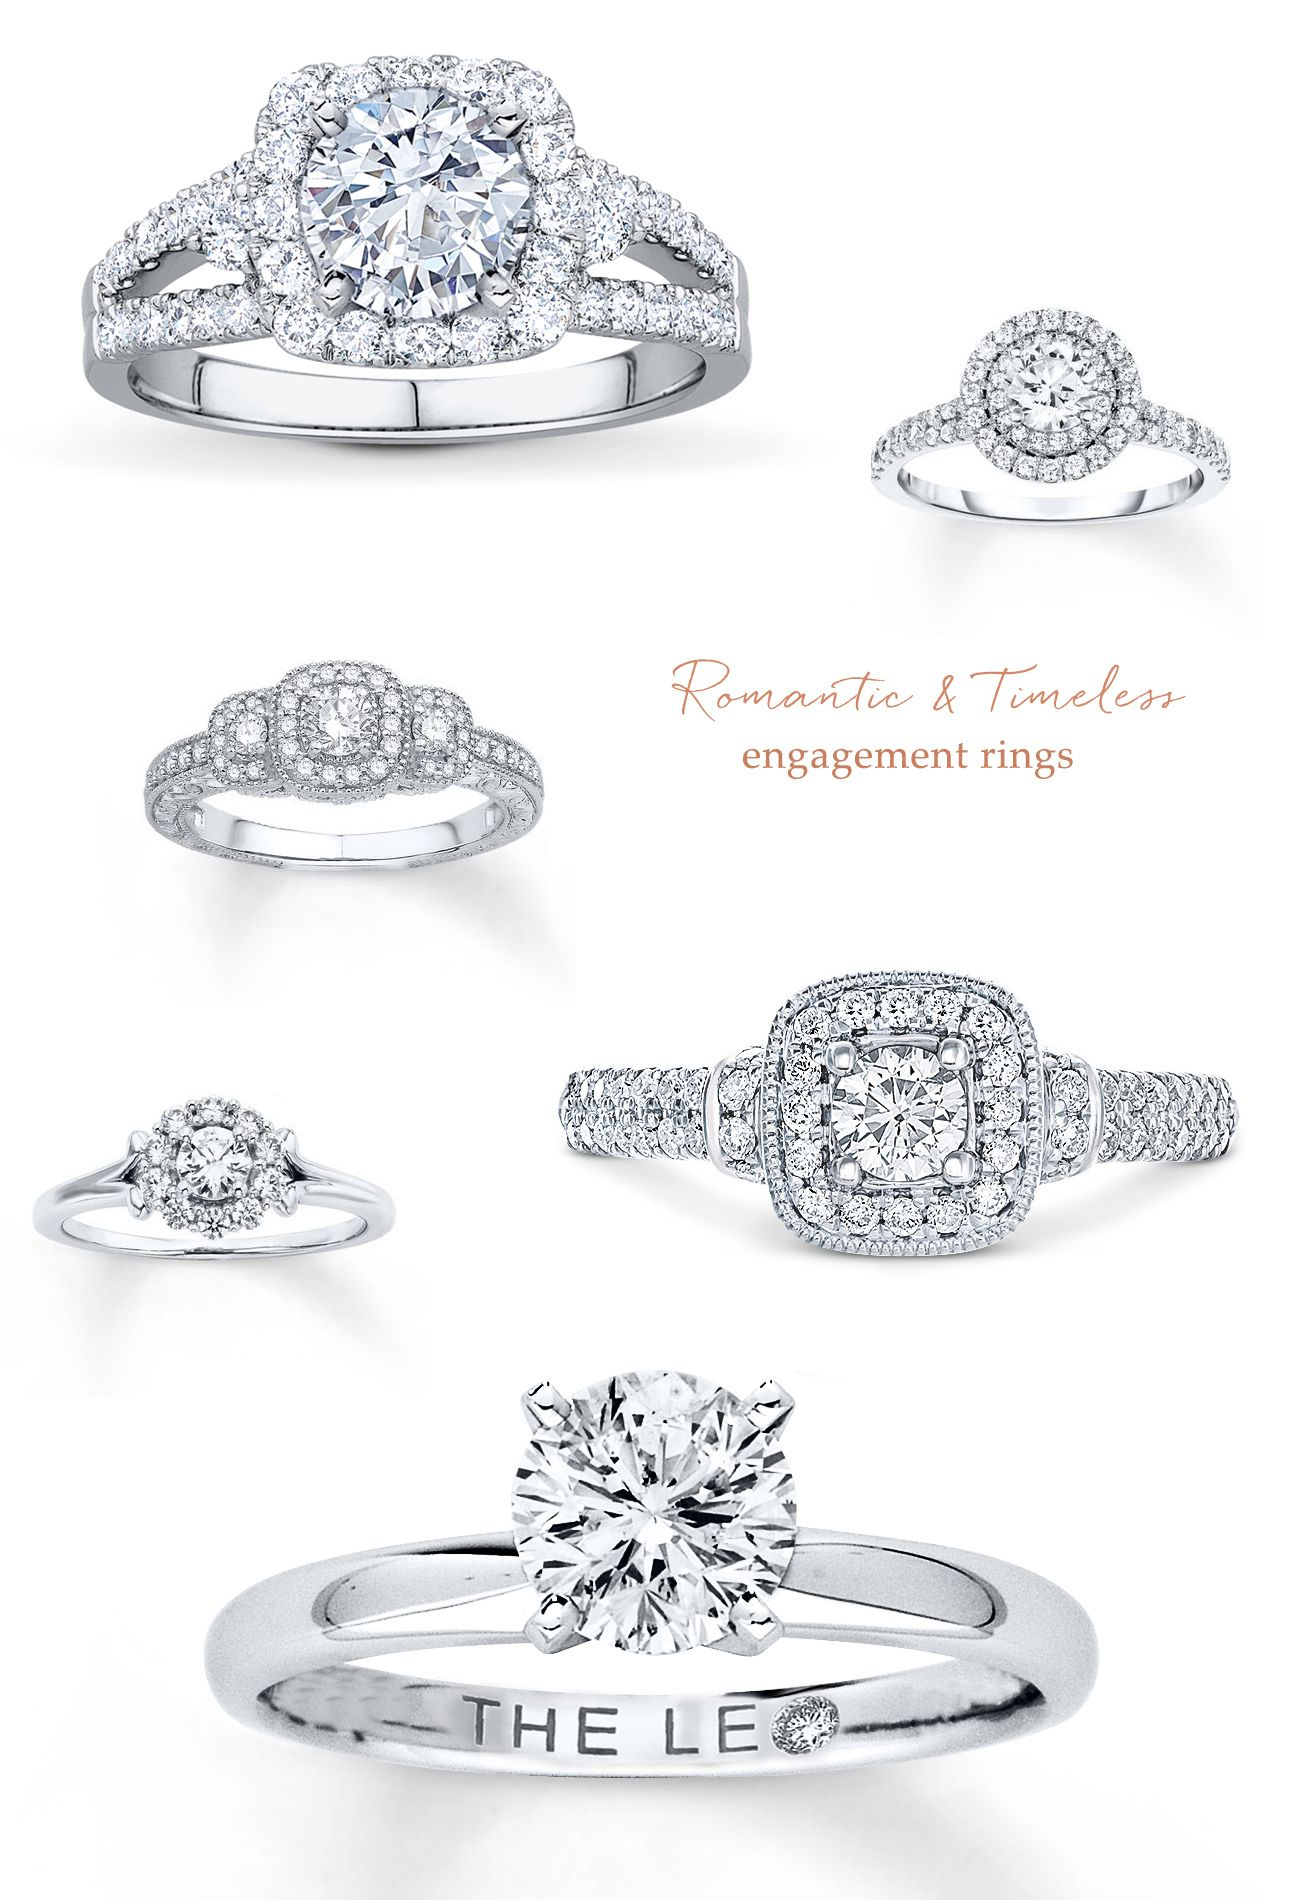 Romantic timeless engagement rings from Jared BrideNBeyond ad